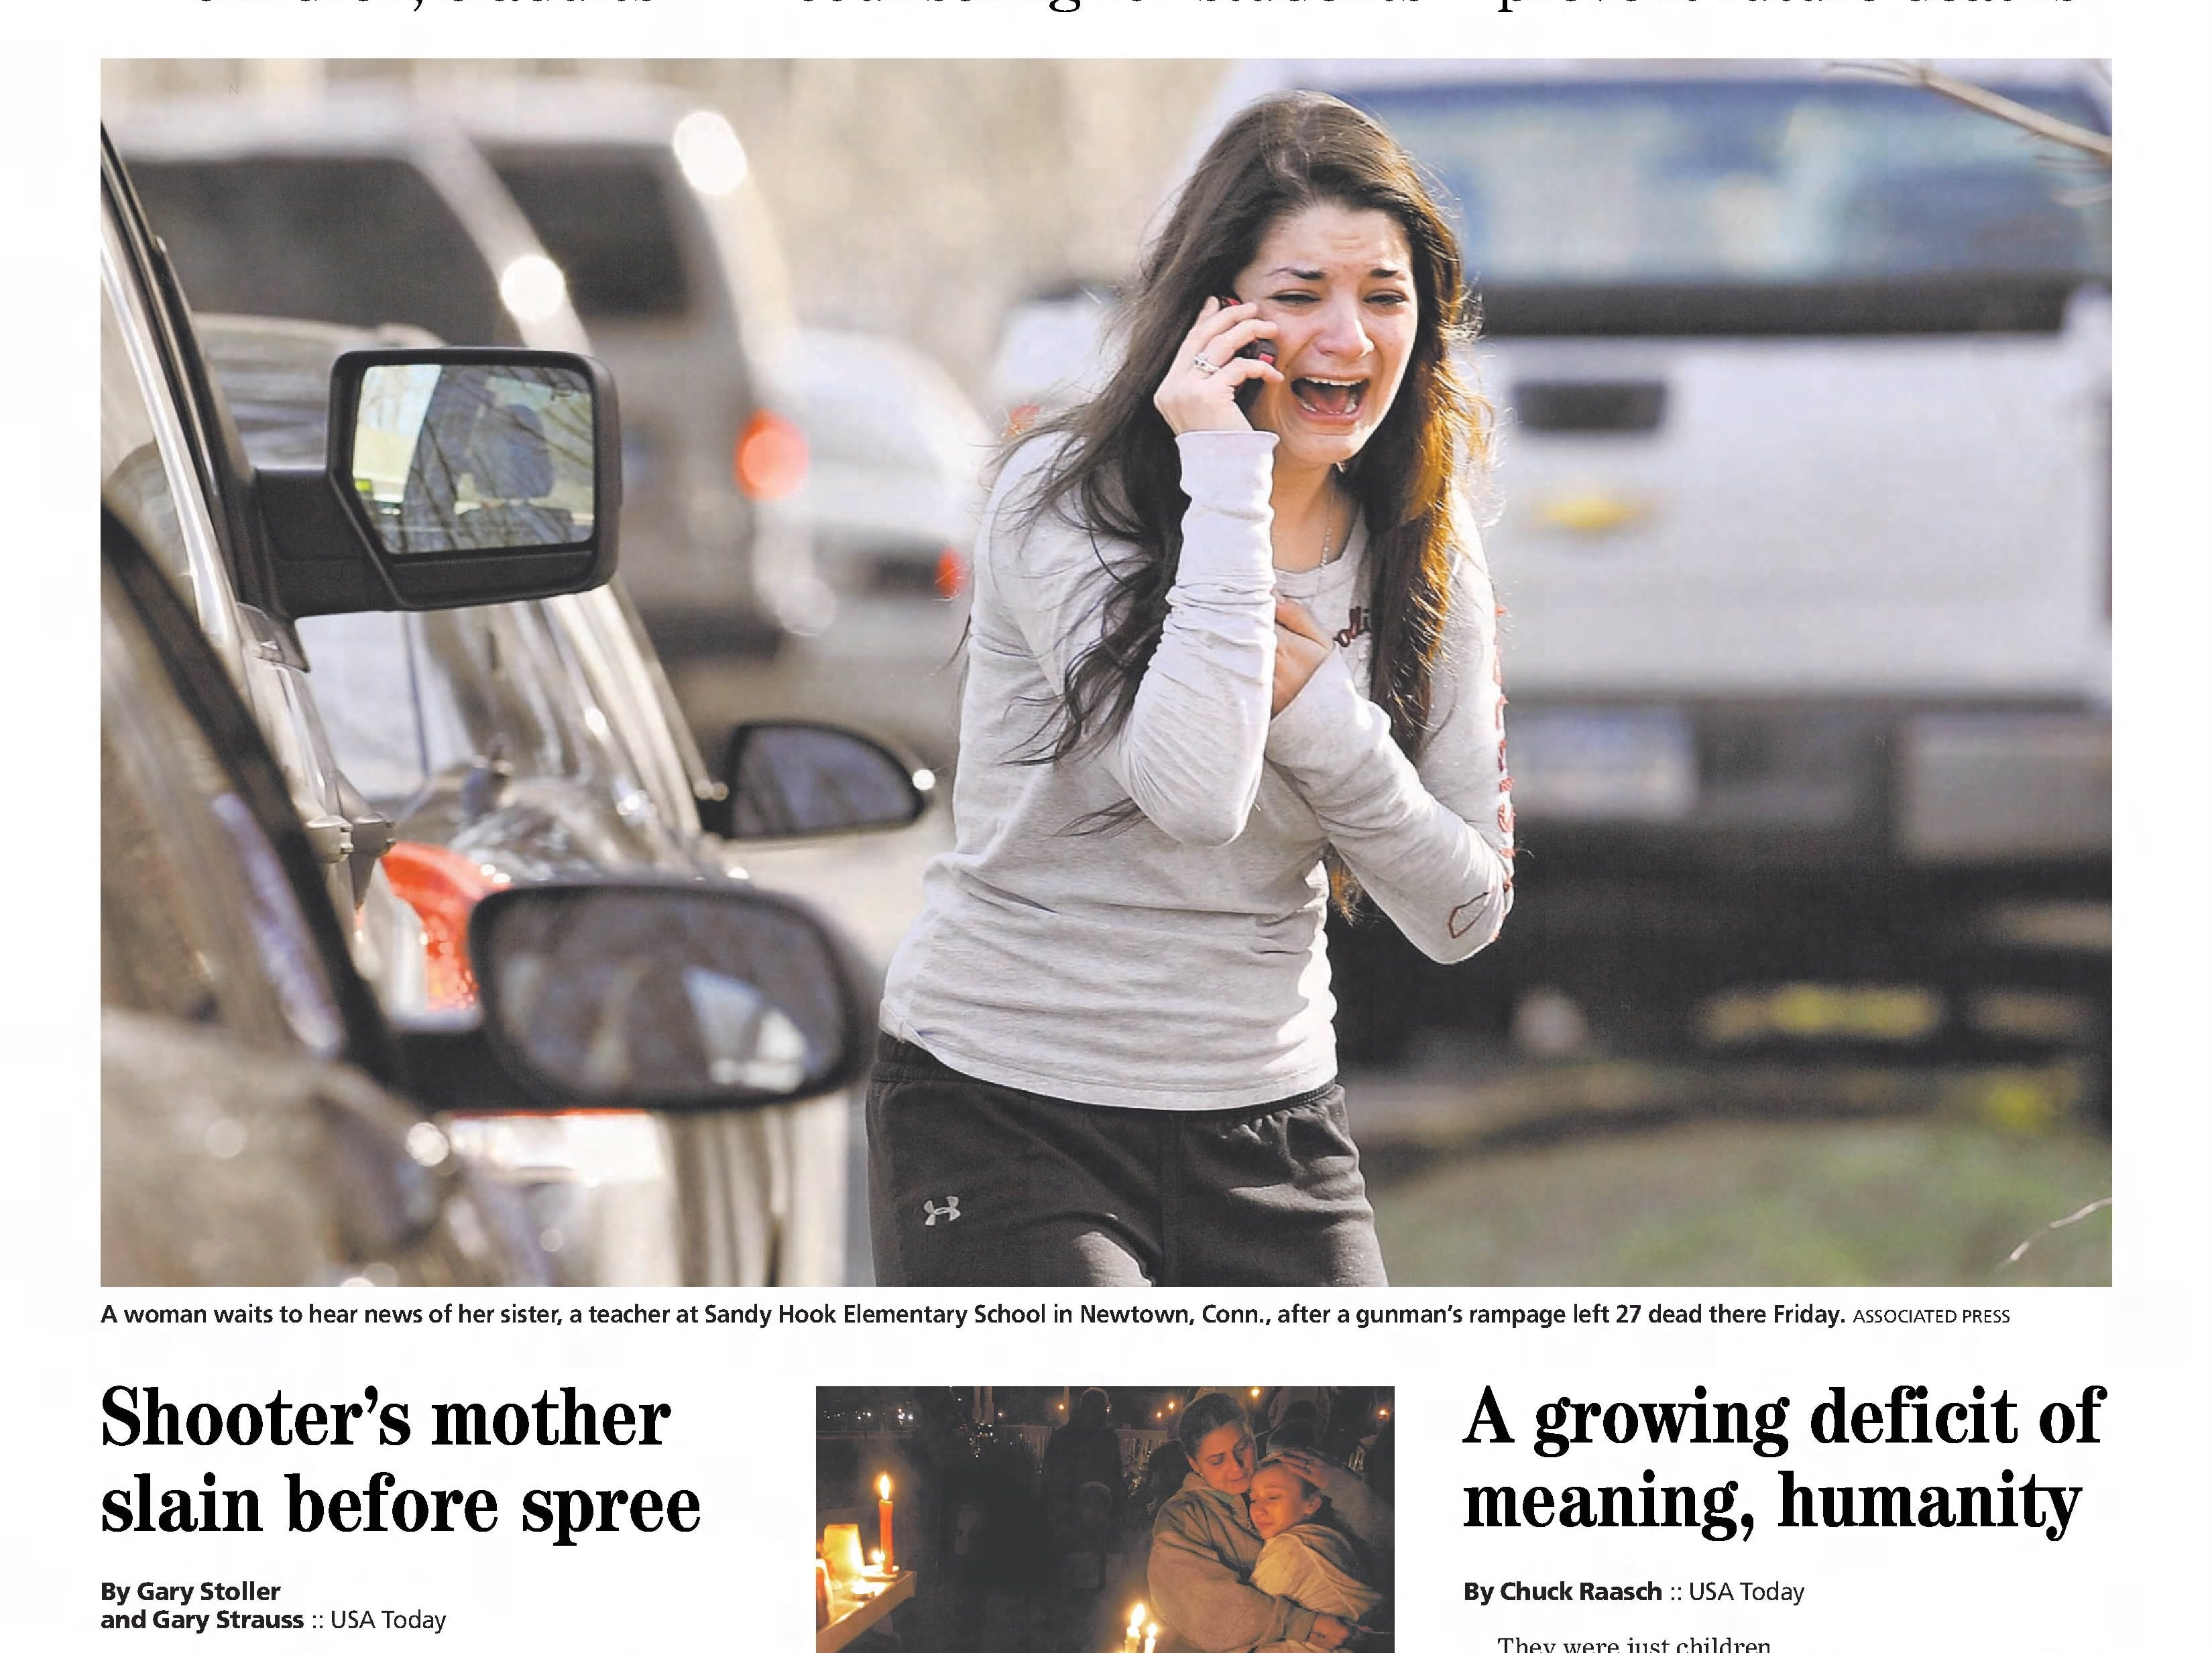 """Twenty children between the ages of six and seven years old, and six educators at Sandy Hook Elementary School in Newtown, Connecticut, are murdered in their classrooms by a lone gunman. In this edition from Saturday, Dec. 15, 2012, the Asbury Park Press asks """"When Will It Stop?"""" Over the course of the decade, the nation has been terrorized and sickened by a continuing series of random mass shootings perpetrated by loners at schools, offices and other public places; the American people are collectively unable to agree what to do about it."""